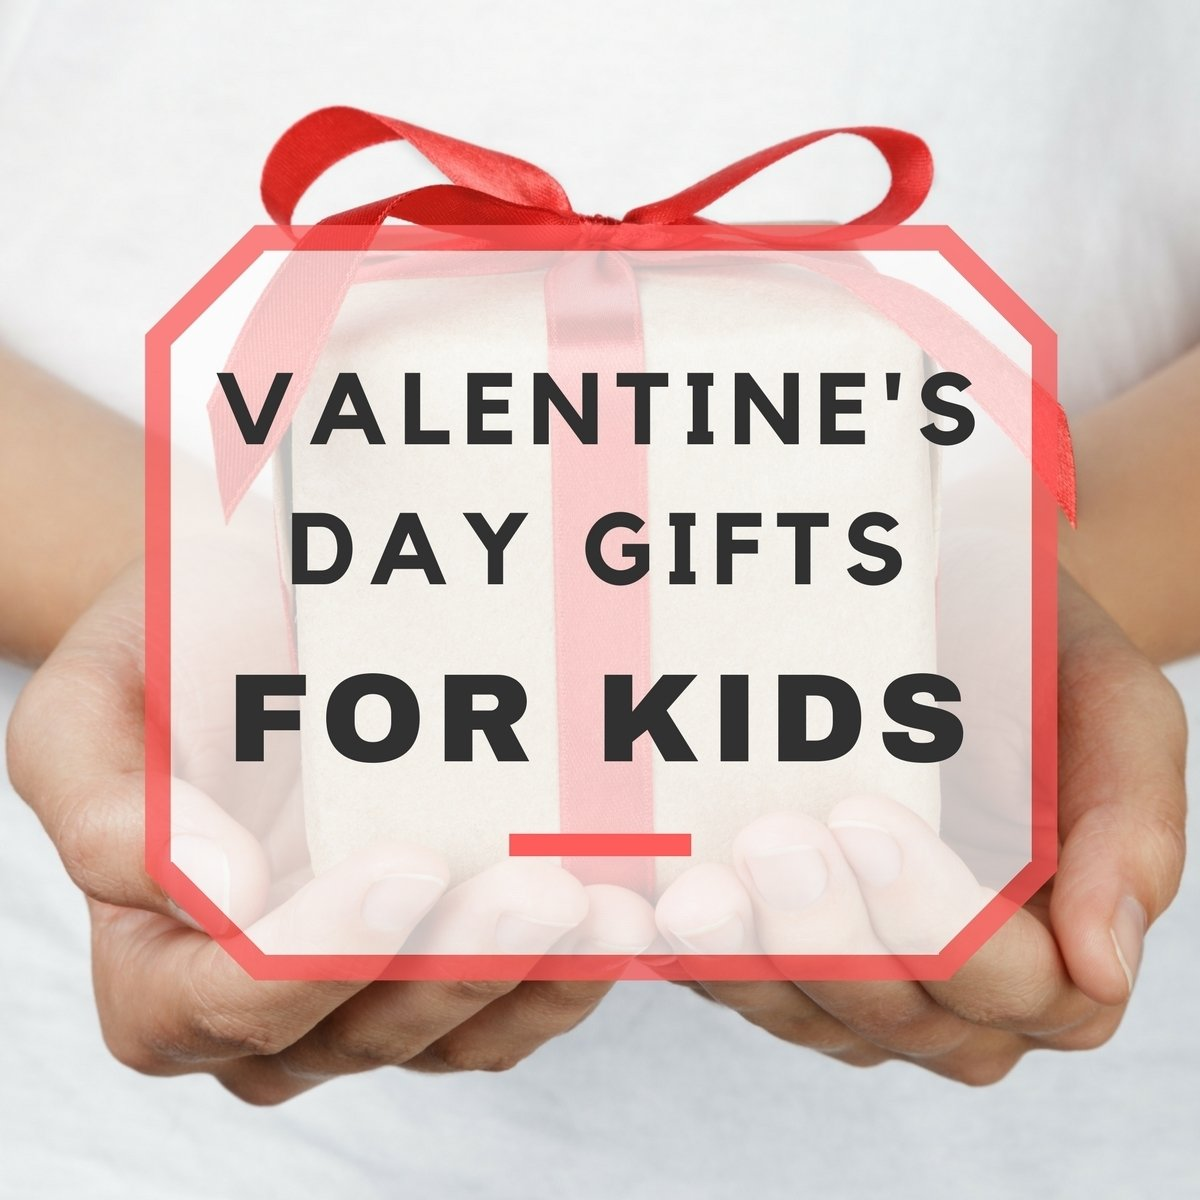 10 Nice Cute Valentines Day Gift Ideas cute valentines day gift ideas for kids 2021